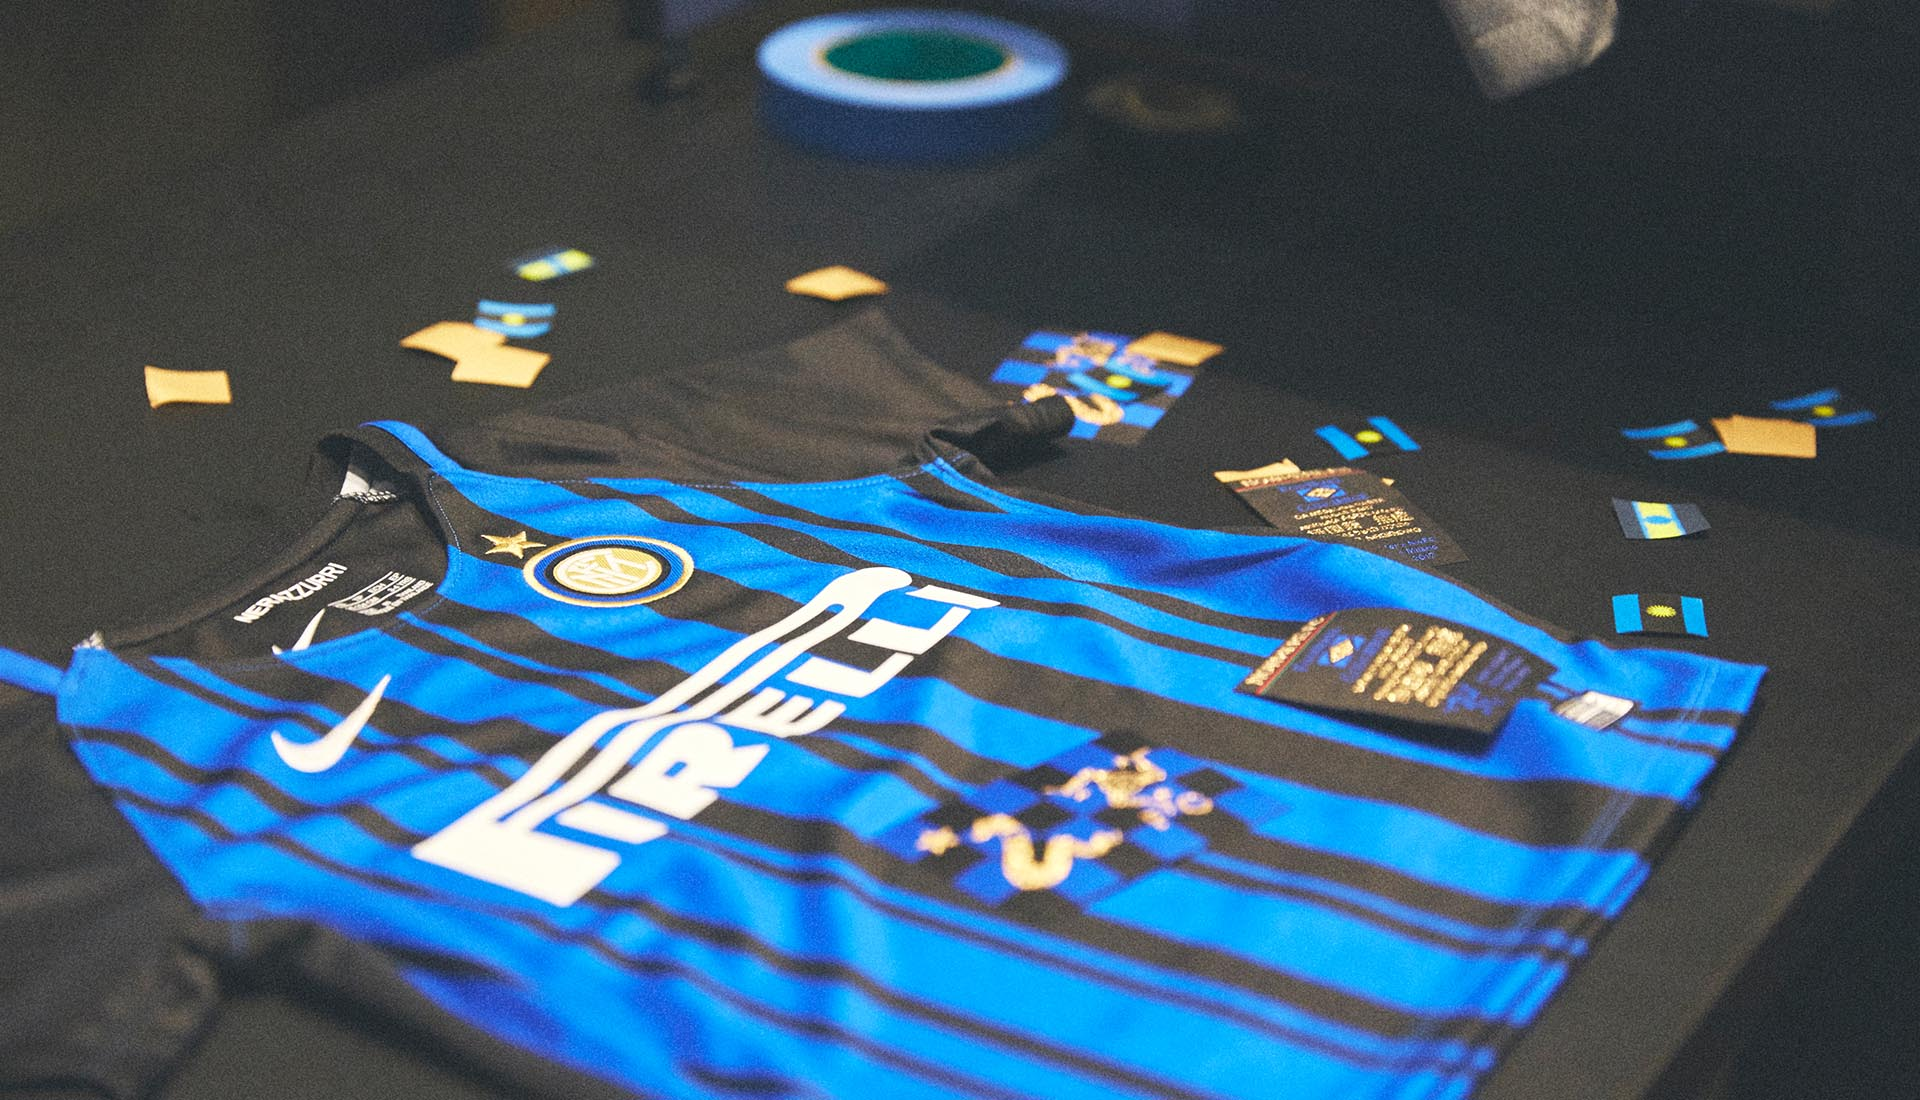 c72dec960 Nowhere FC x Inter Milan Nike Soccerbible 0043 nowhere fc x inter milan  27.jpg